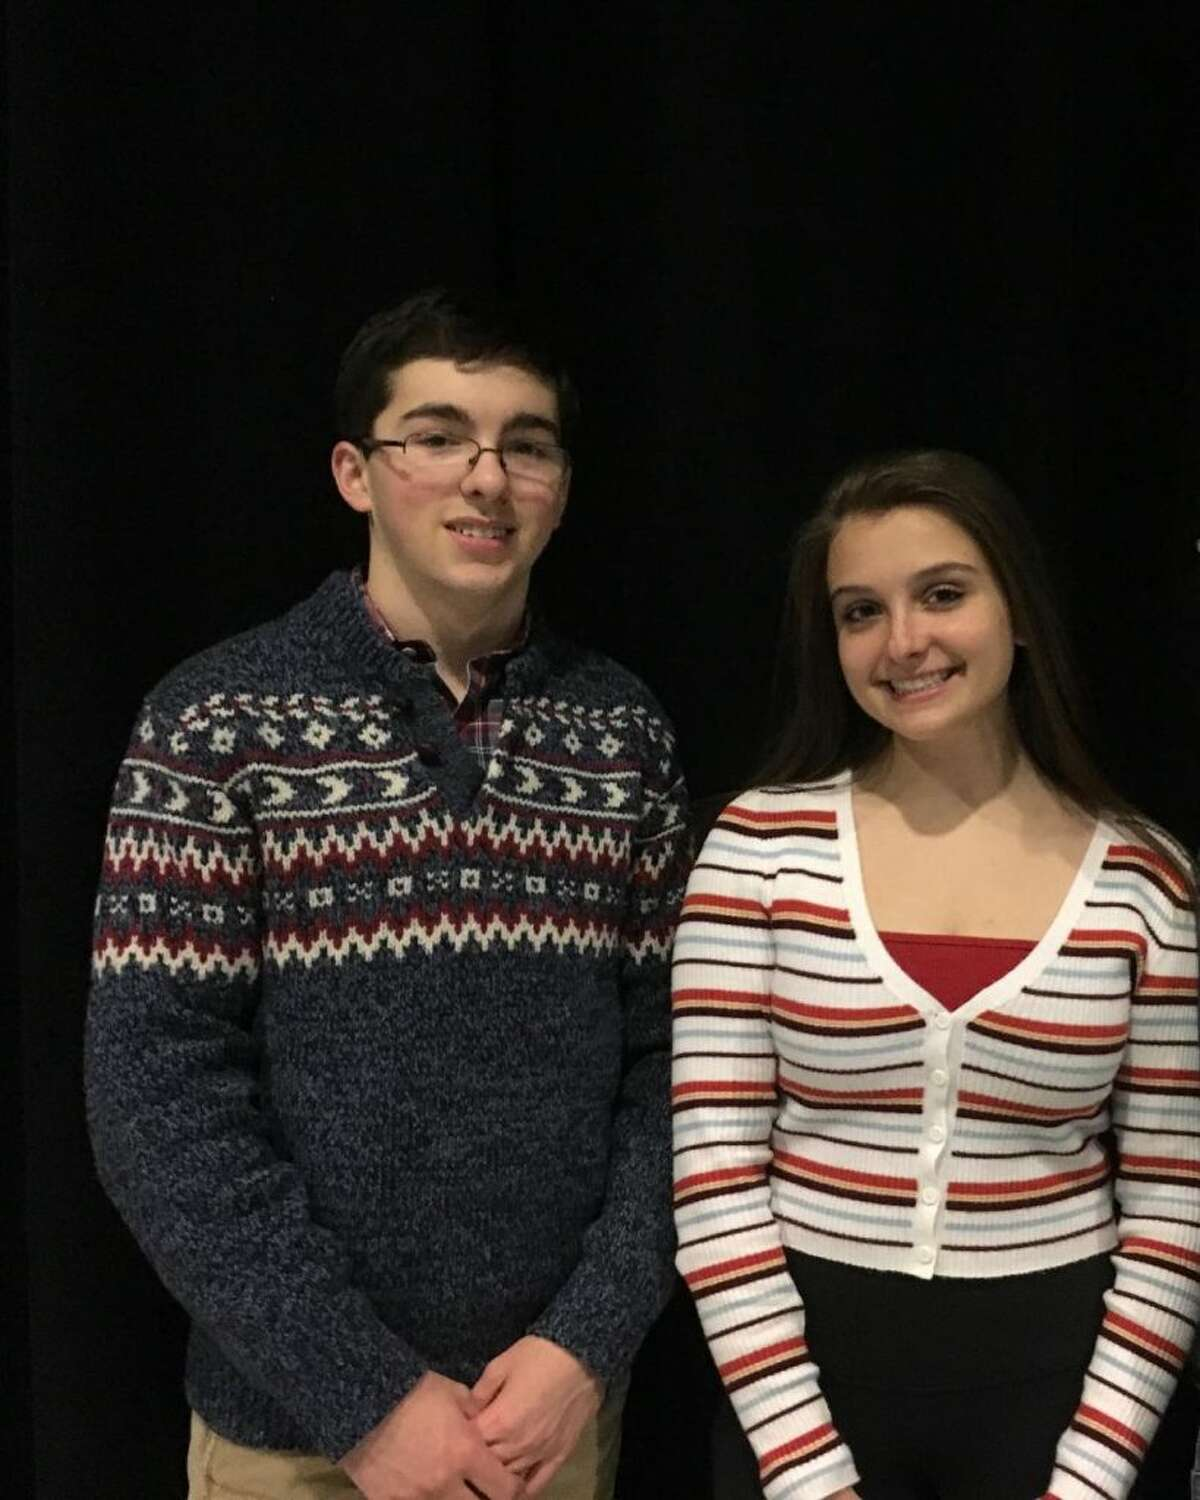 Seniors Evan Smolin and Emily Parker have been cast in the roles of Gomez and Morticia Addams in The Addams Family, playing at Ridgefield High School March 15-23.